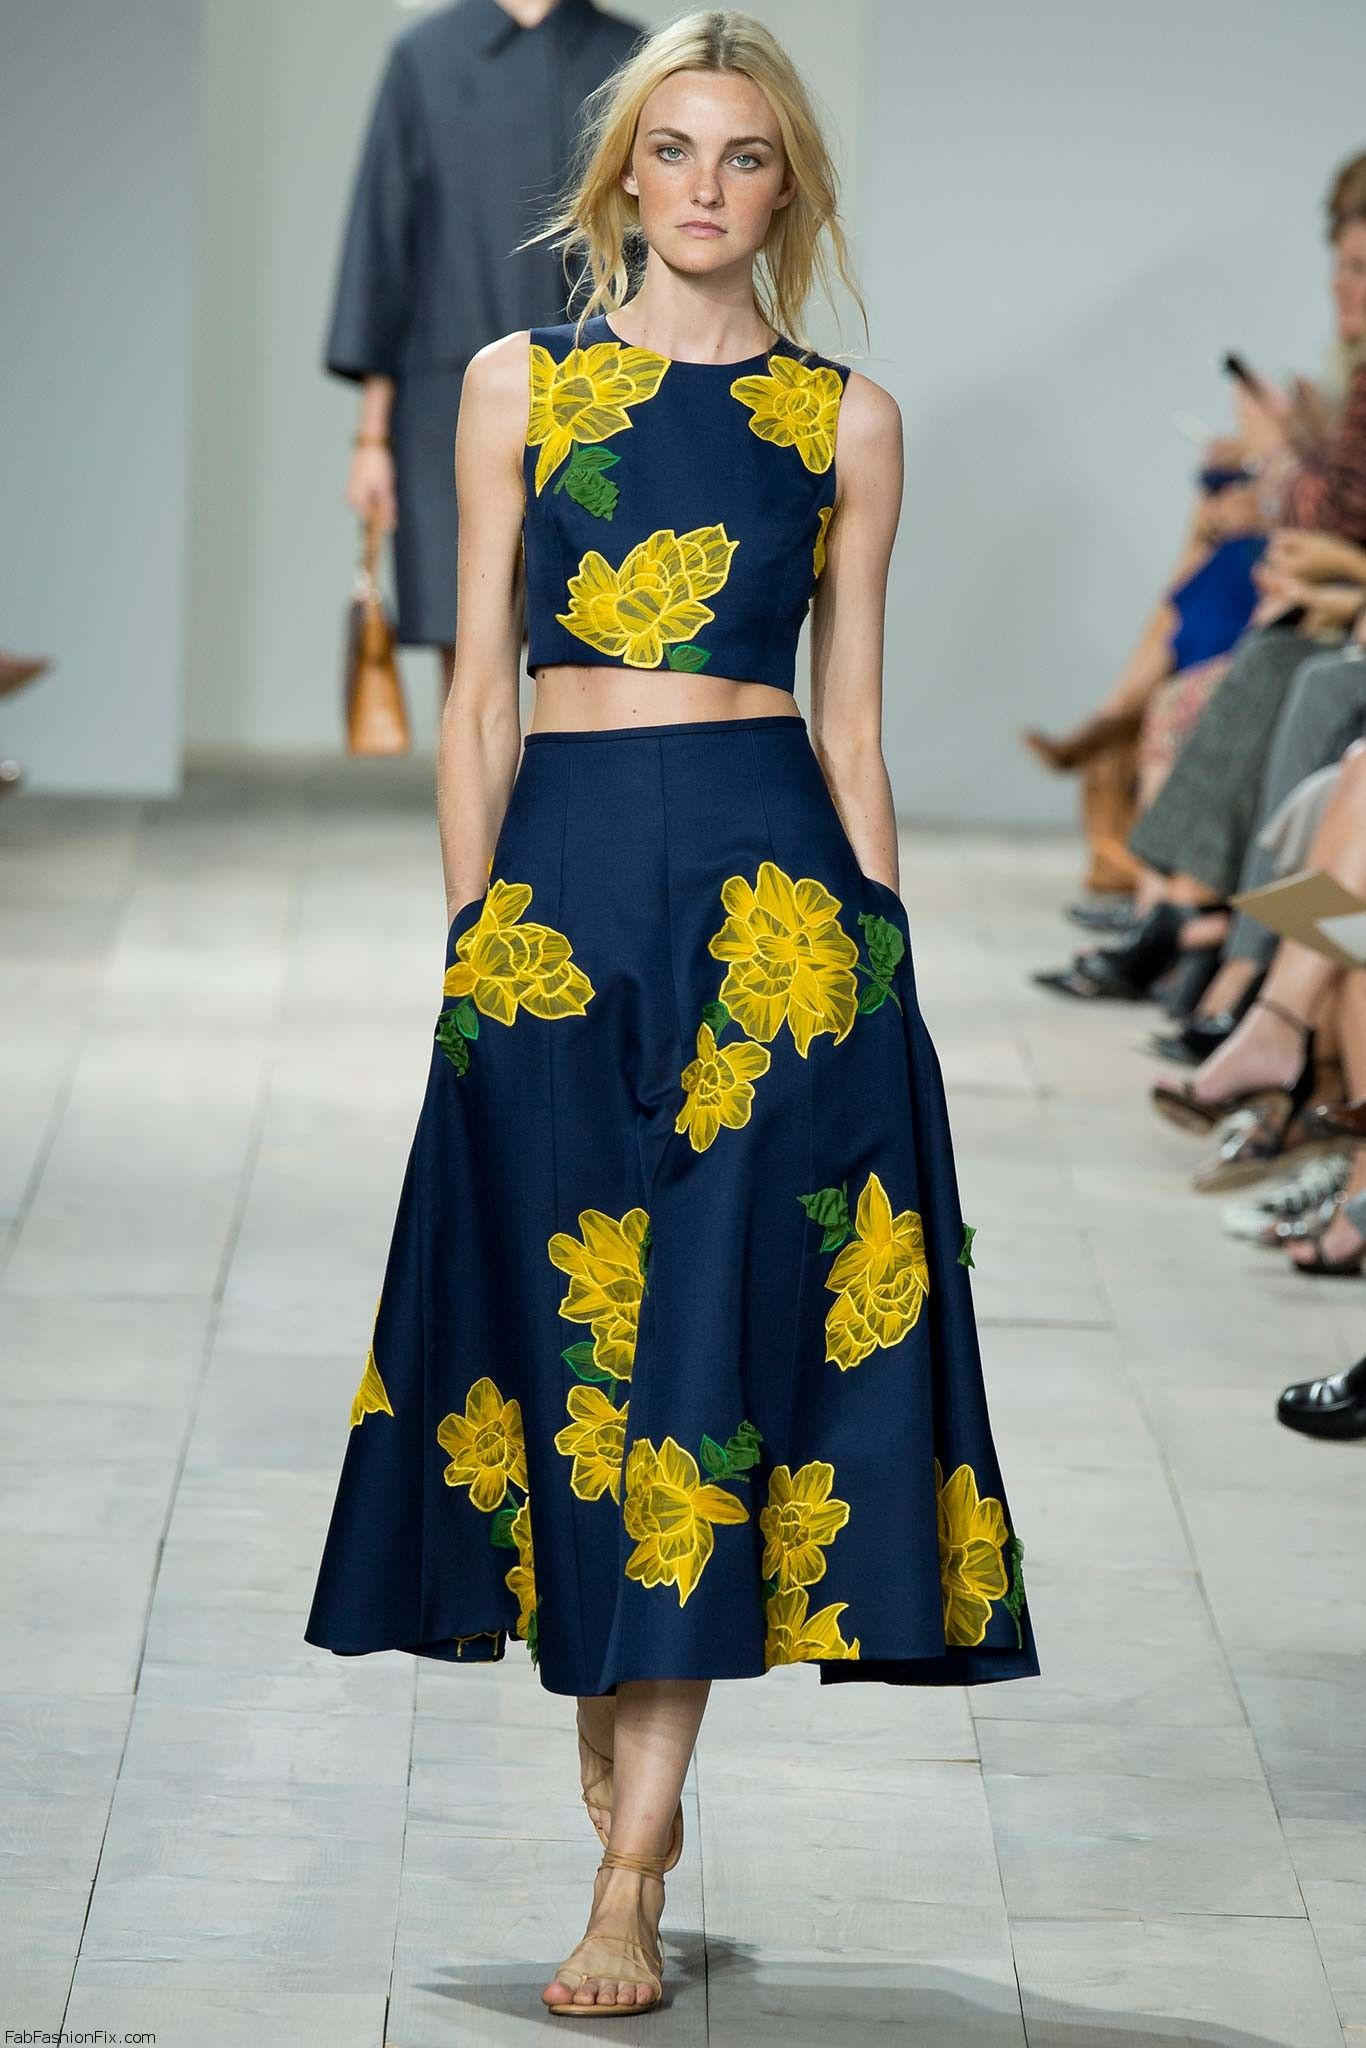 Michael kors spring summer 2015 collection new york for Boda en jardin vestidos